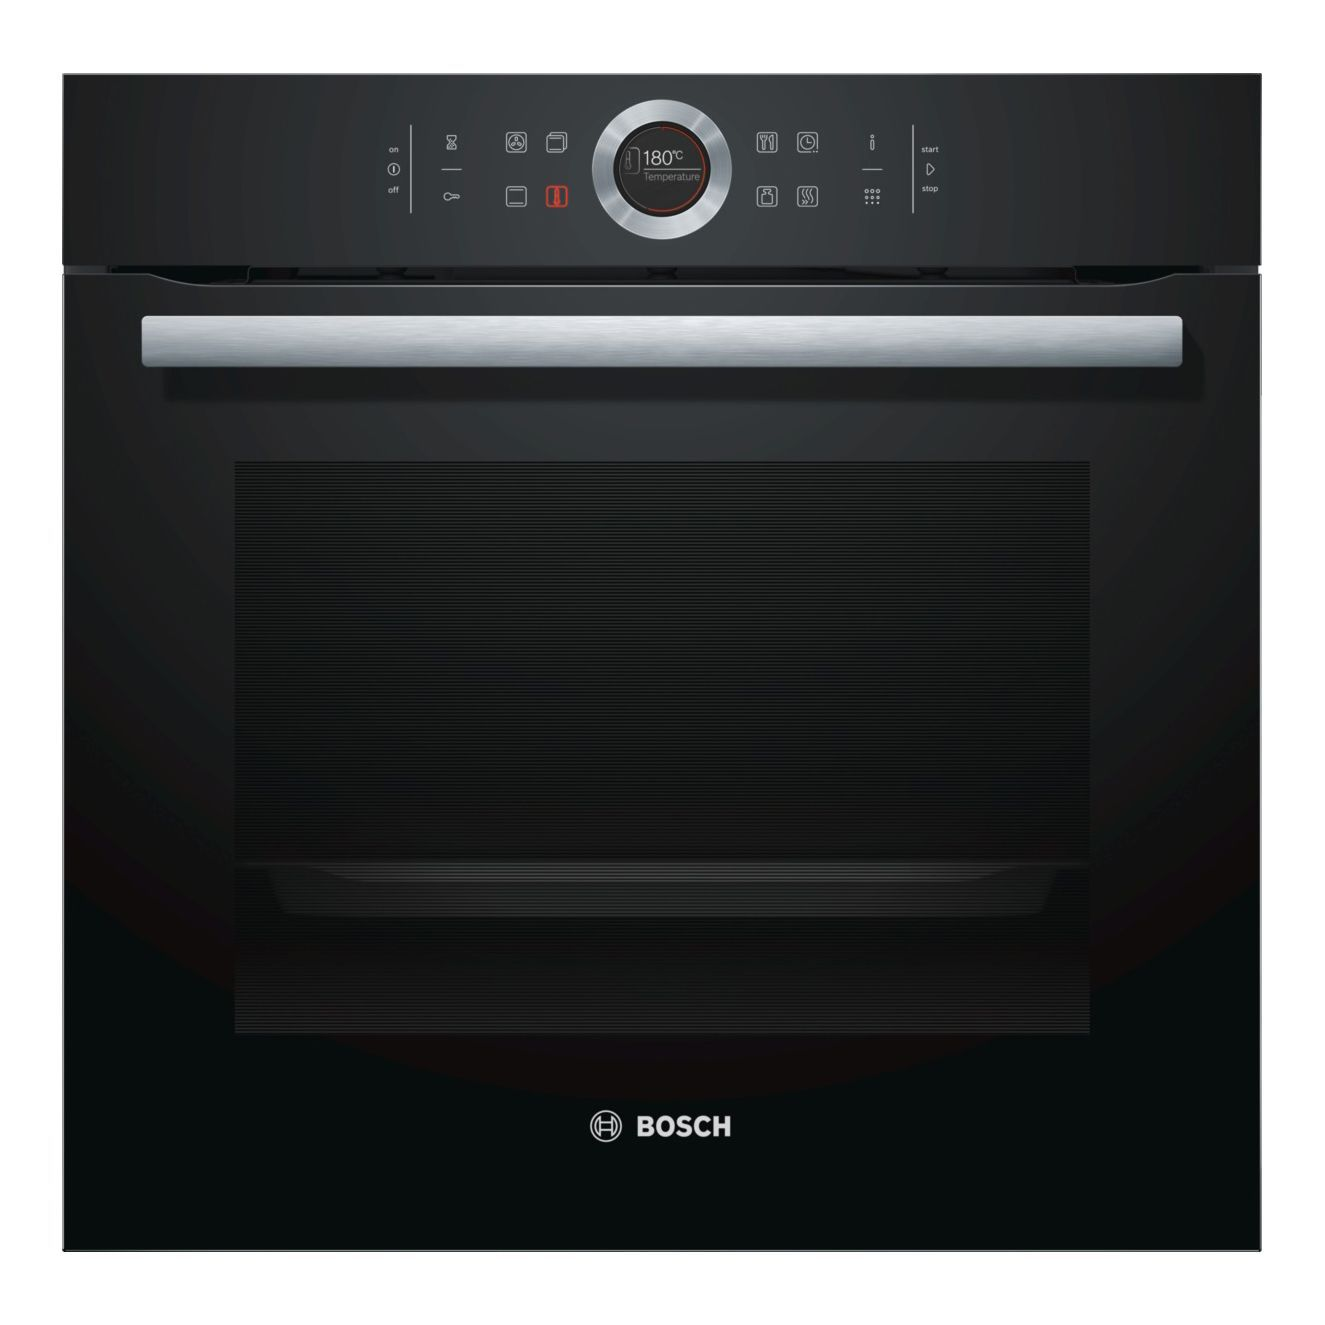 Bosch Microwave Convection Oven Manual Bestmicrowave